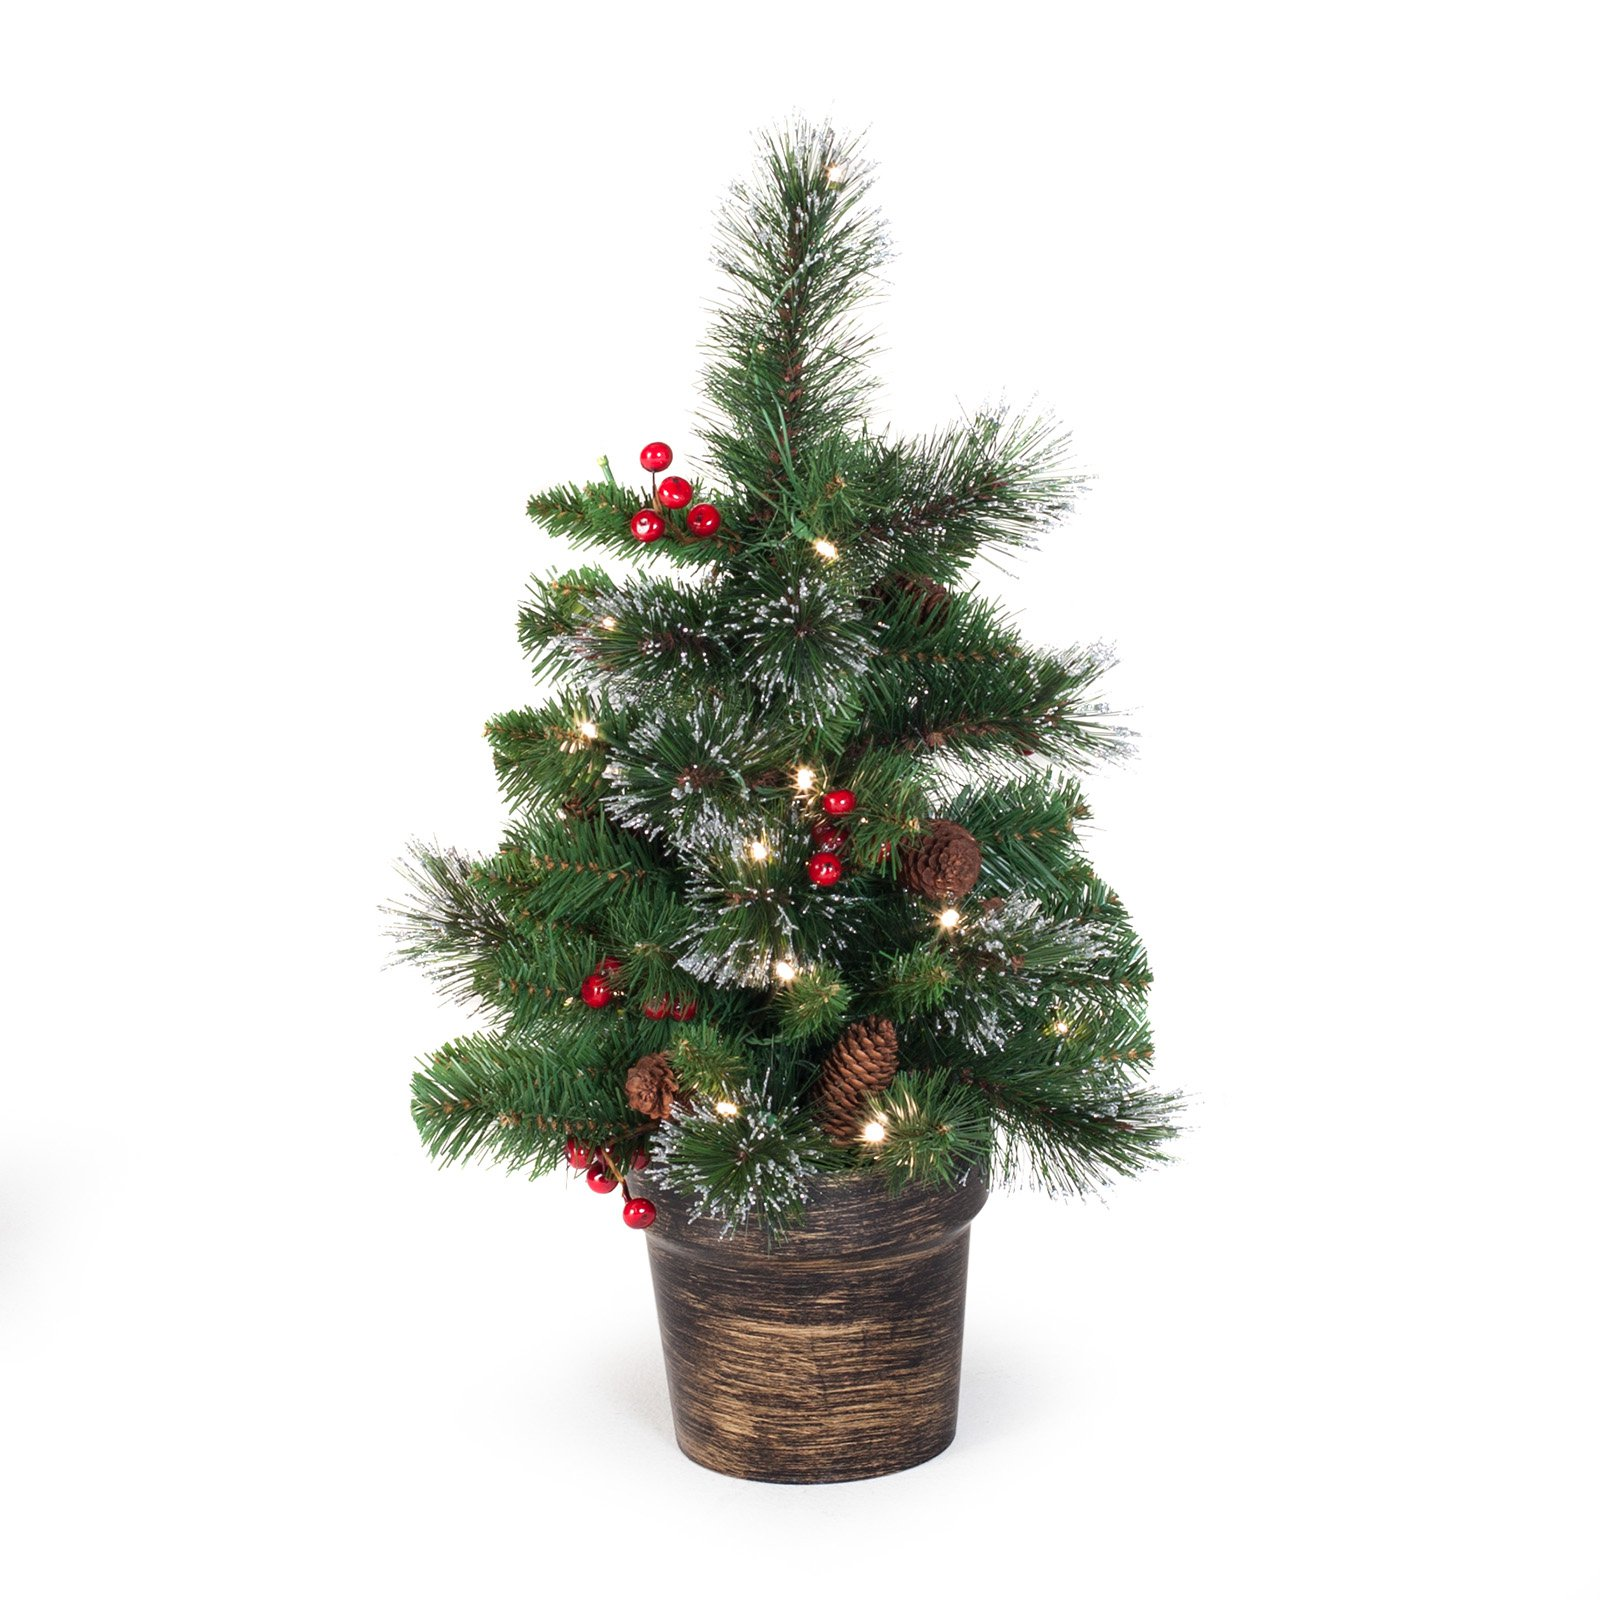 Small Battery Operated Christmas Tree: Small Battery Operated Christmas Tree